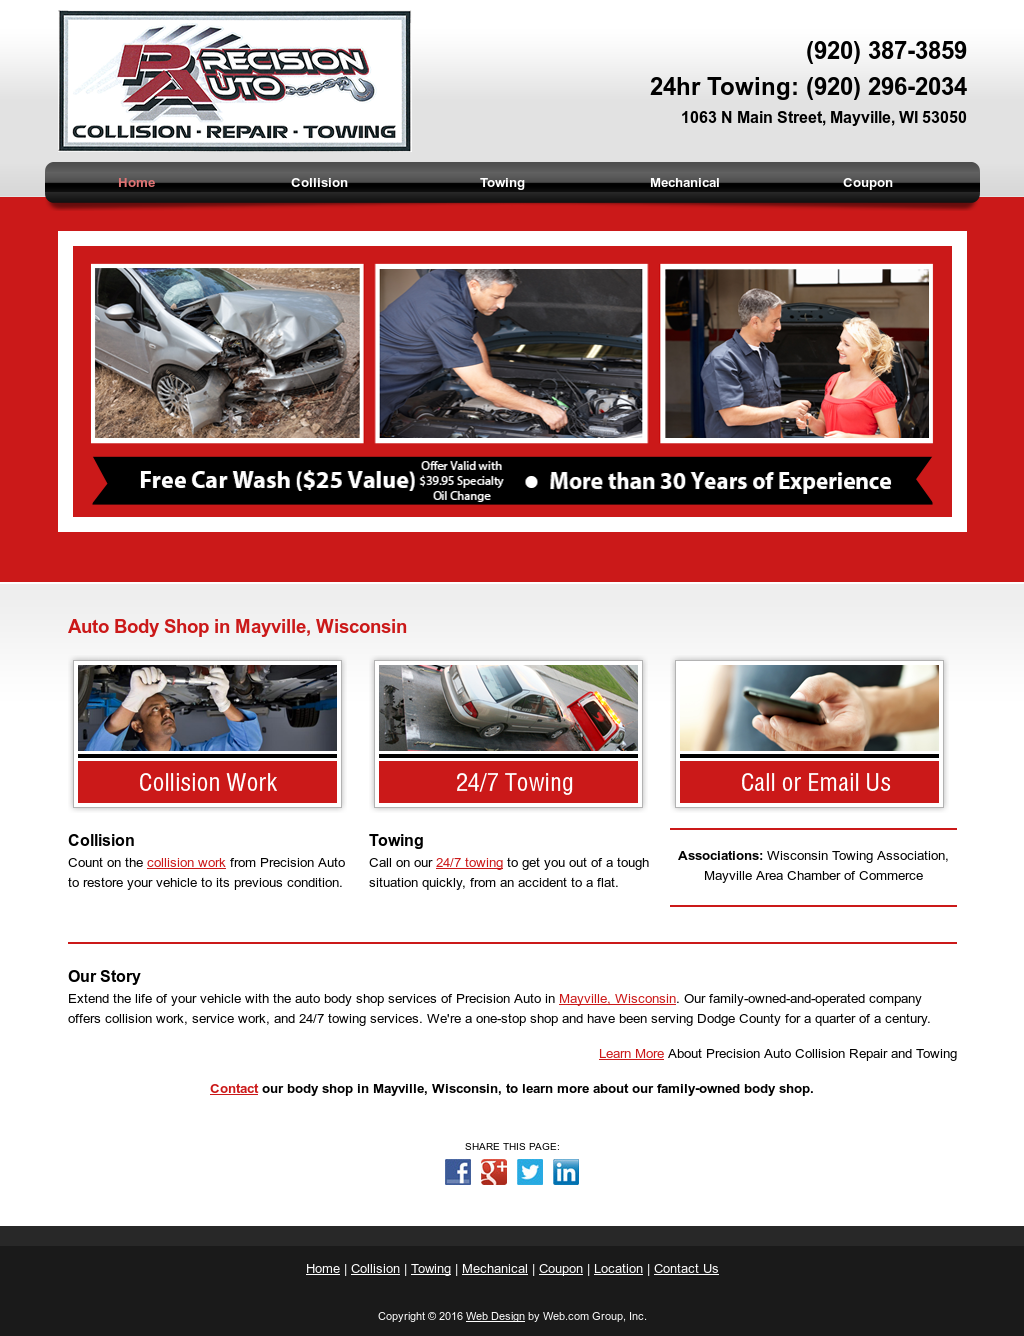 Precision Auto Body And Frame Competitors, Revenue and Employees ...